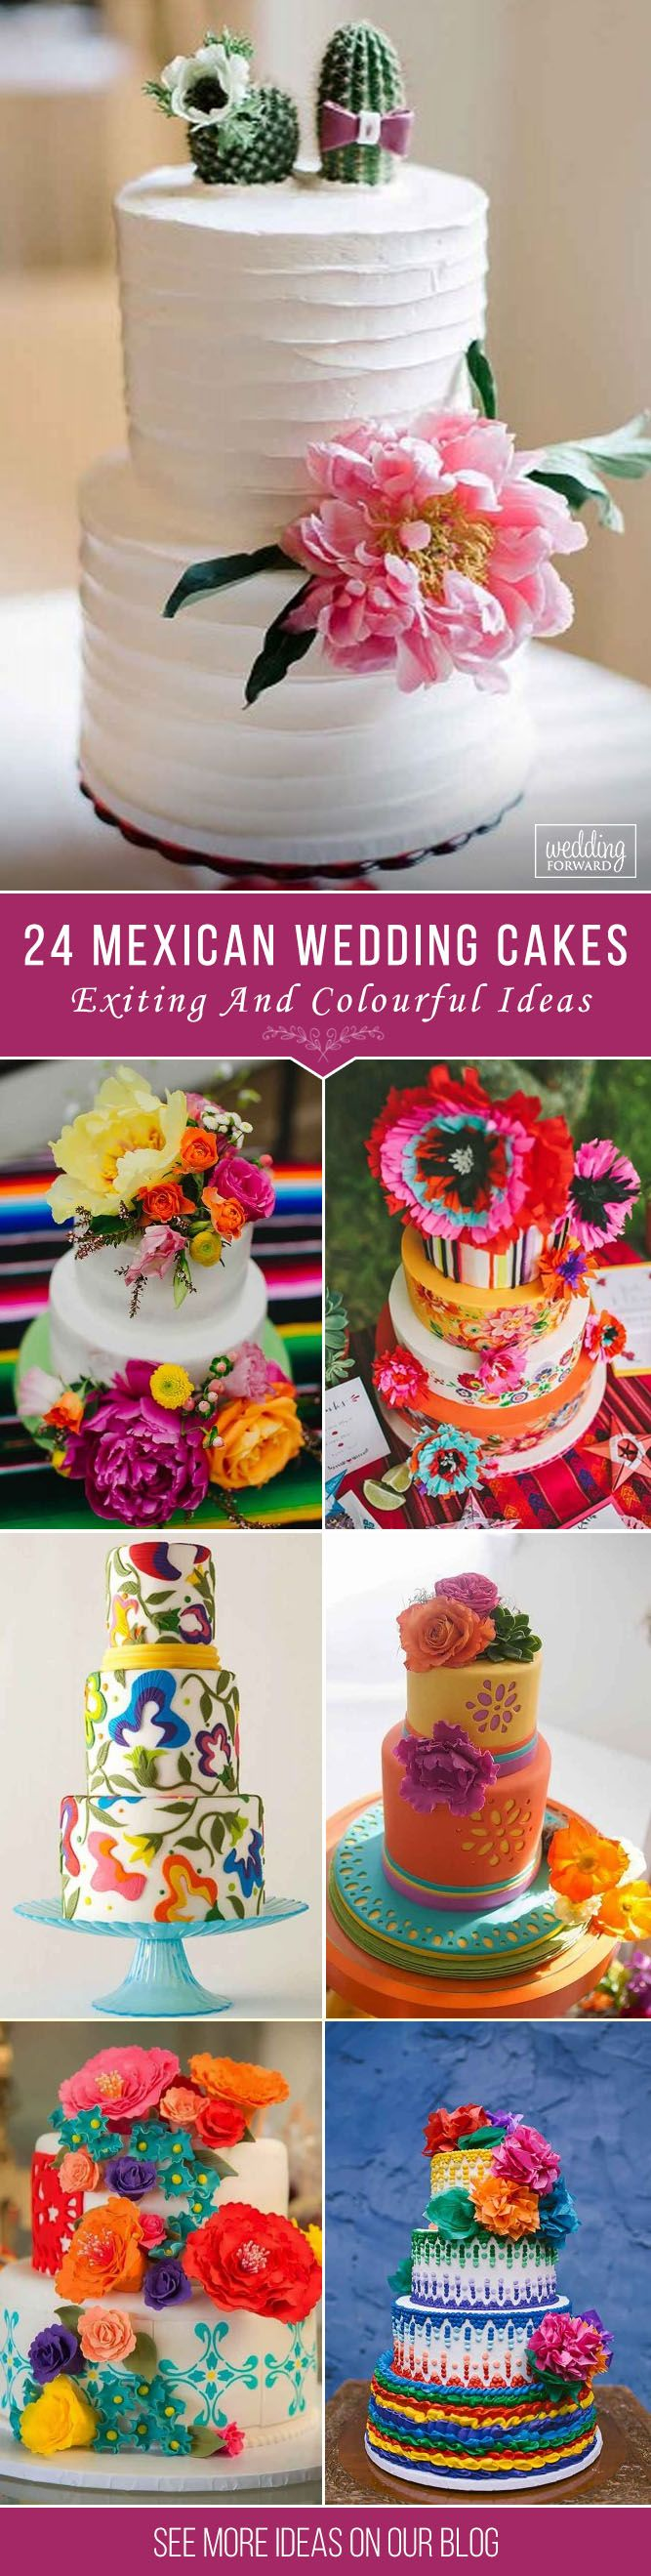 24 Exciting & Colourful Mexican Wedding Cake Ideas ❤ Mexican wedding cake could be very funny and creative. There are four rules for such kind of cake creation. See our gallery and look for the bonus! See more: http://www.weddingforward.com/mexican-wedding-cake-ideas/‎ #wedding #cakes